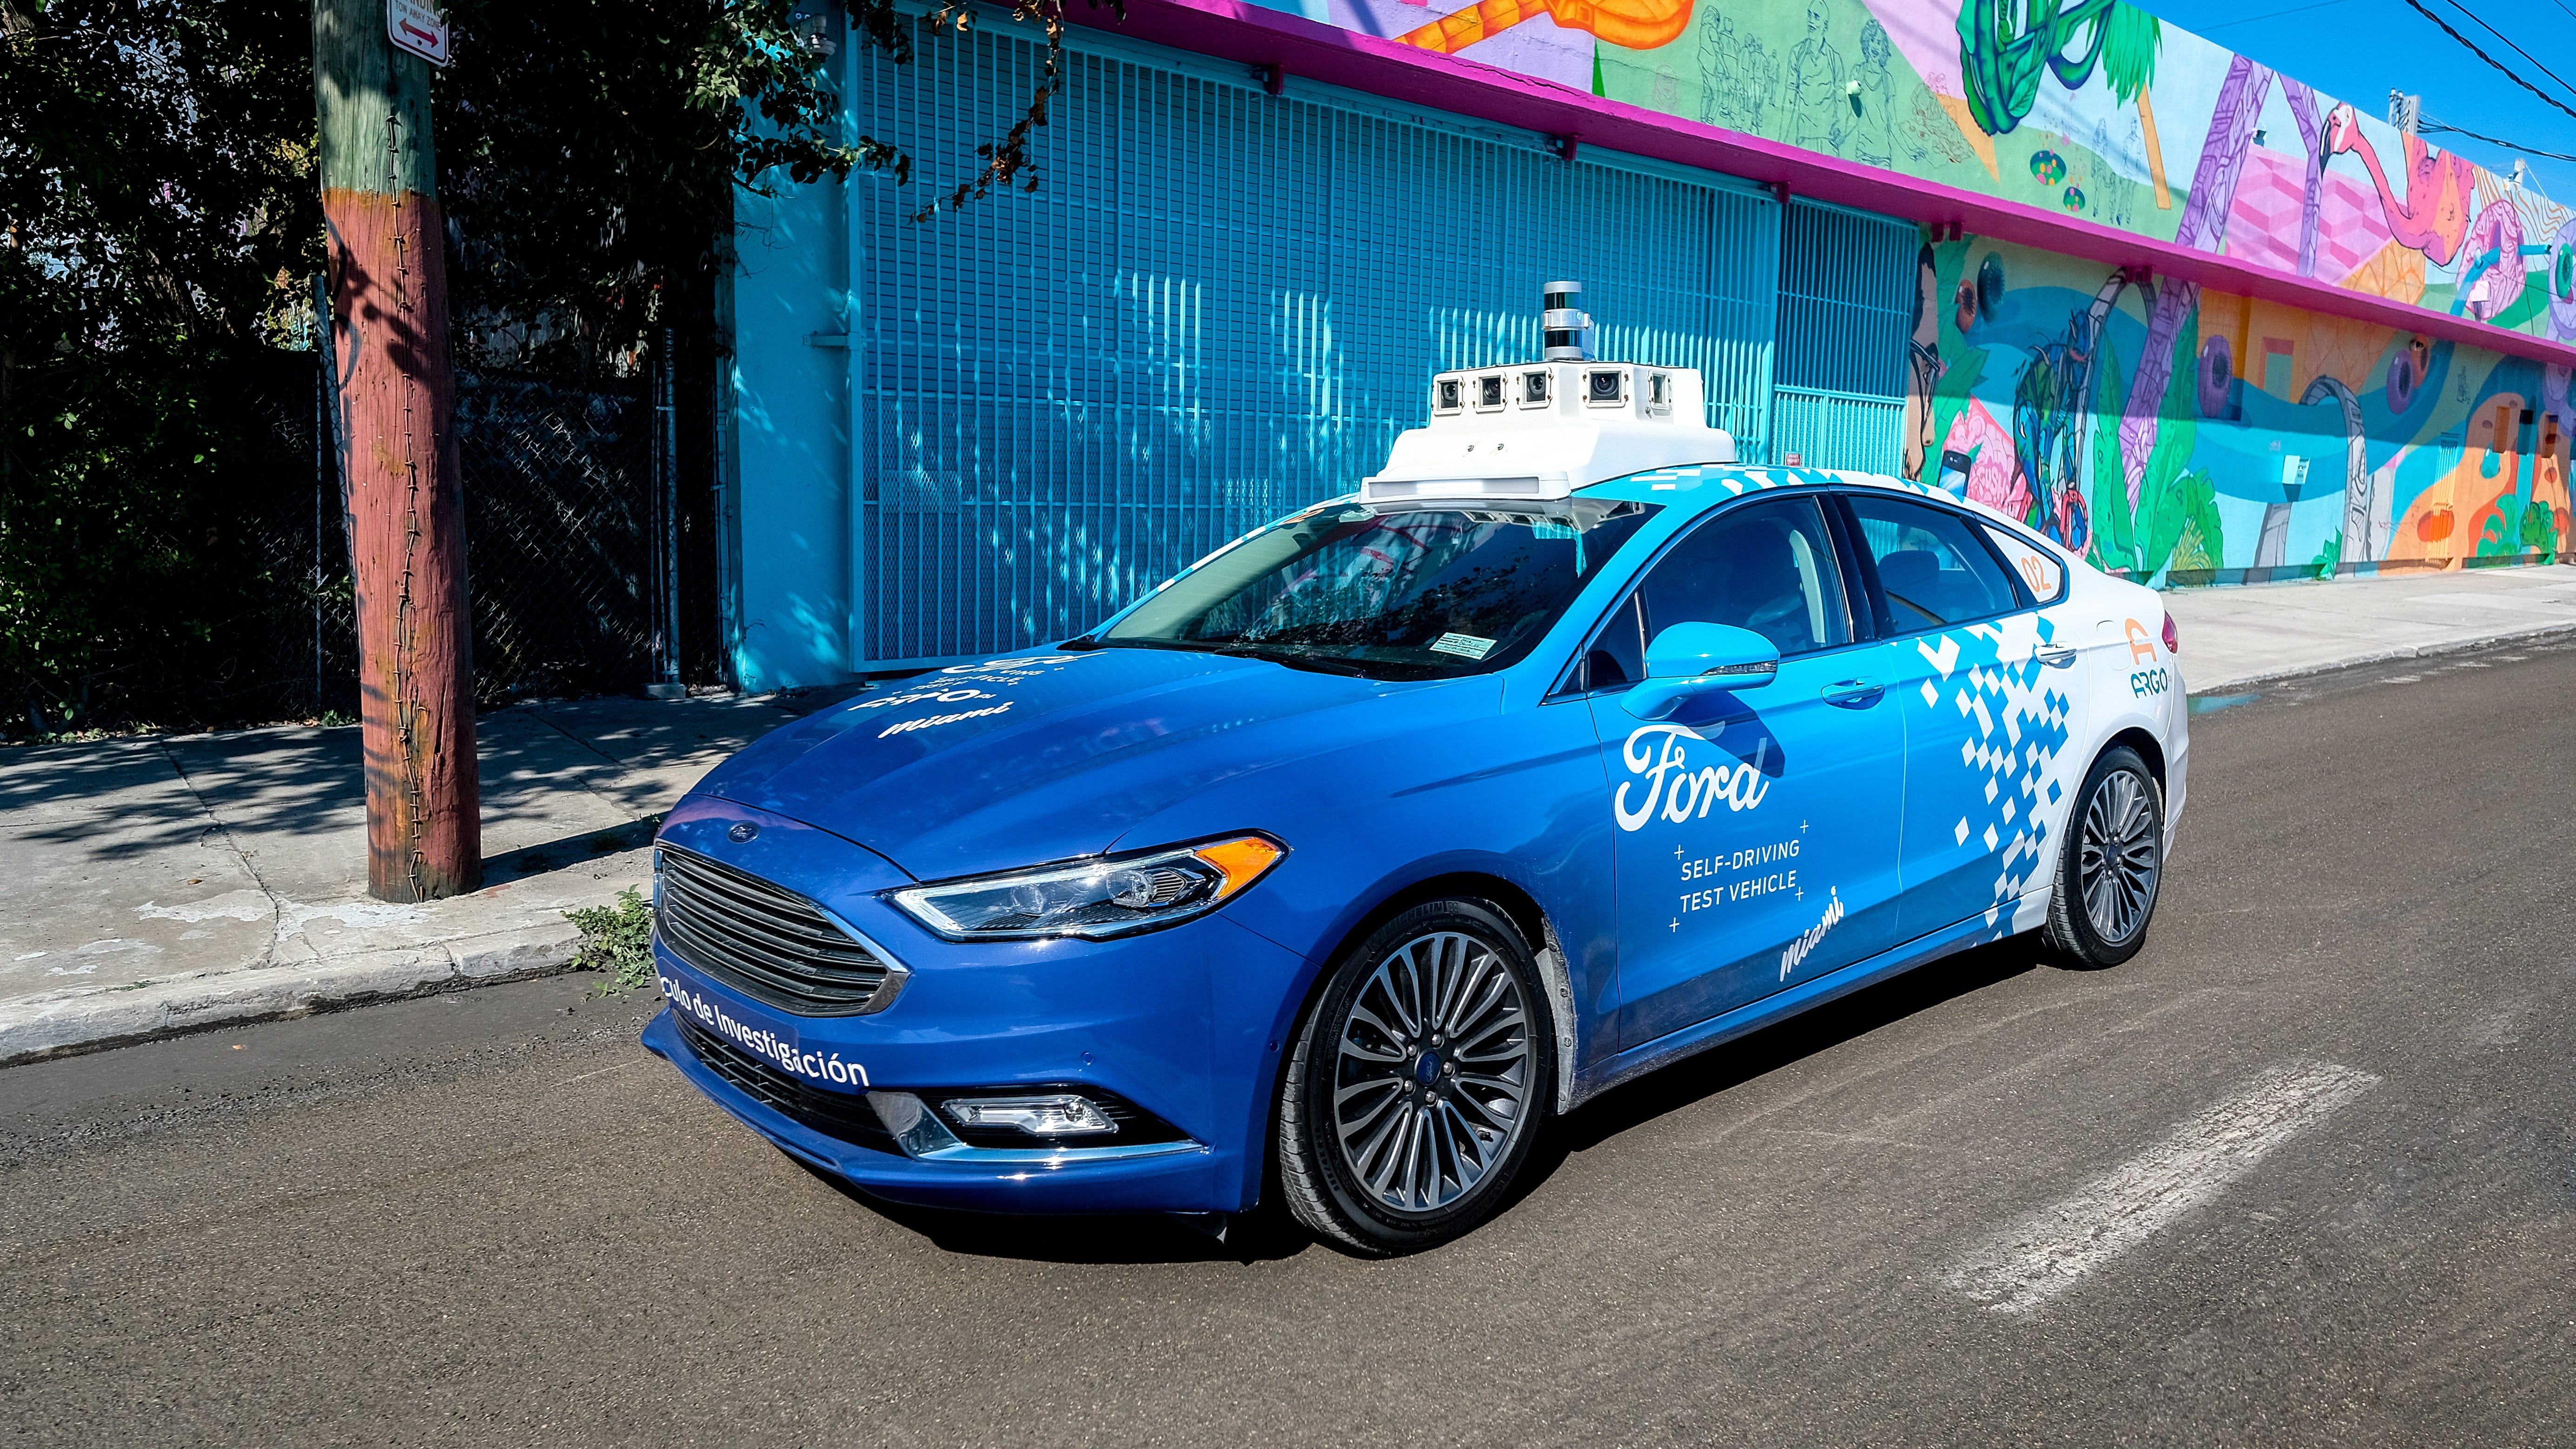 Howes: Michigan's automakers compete for self-driving lead